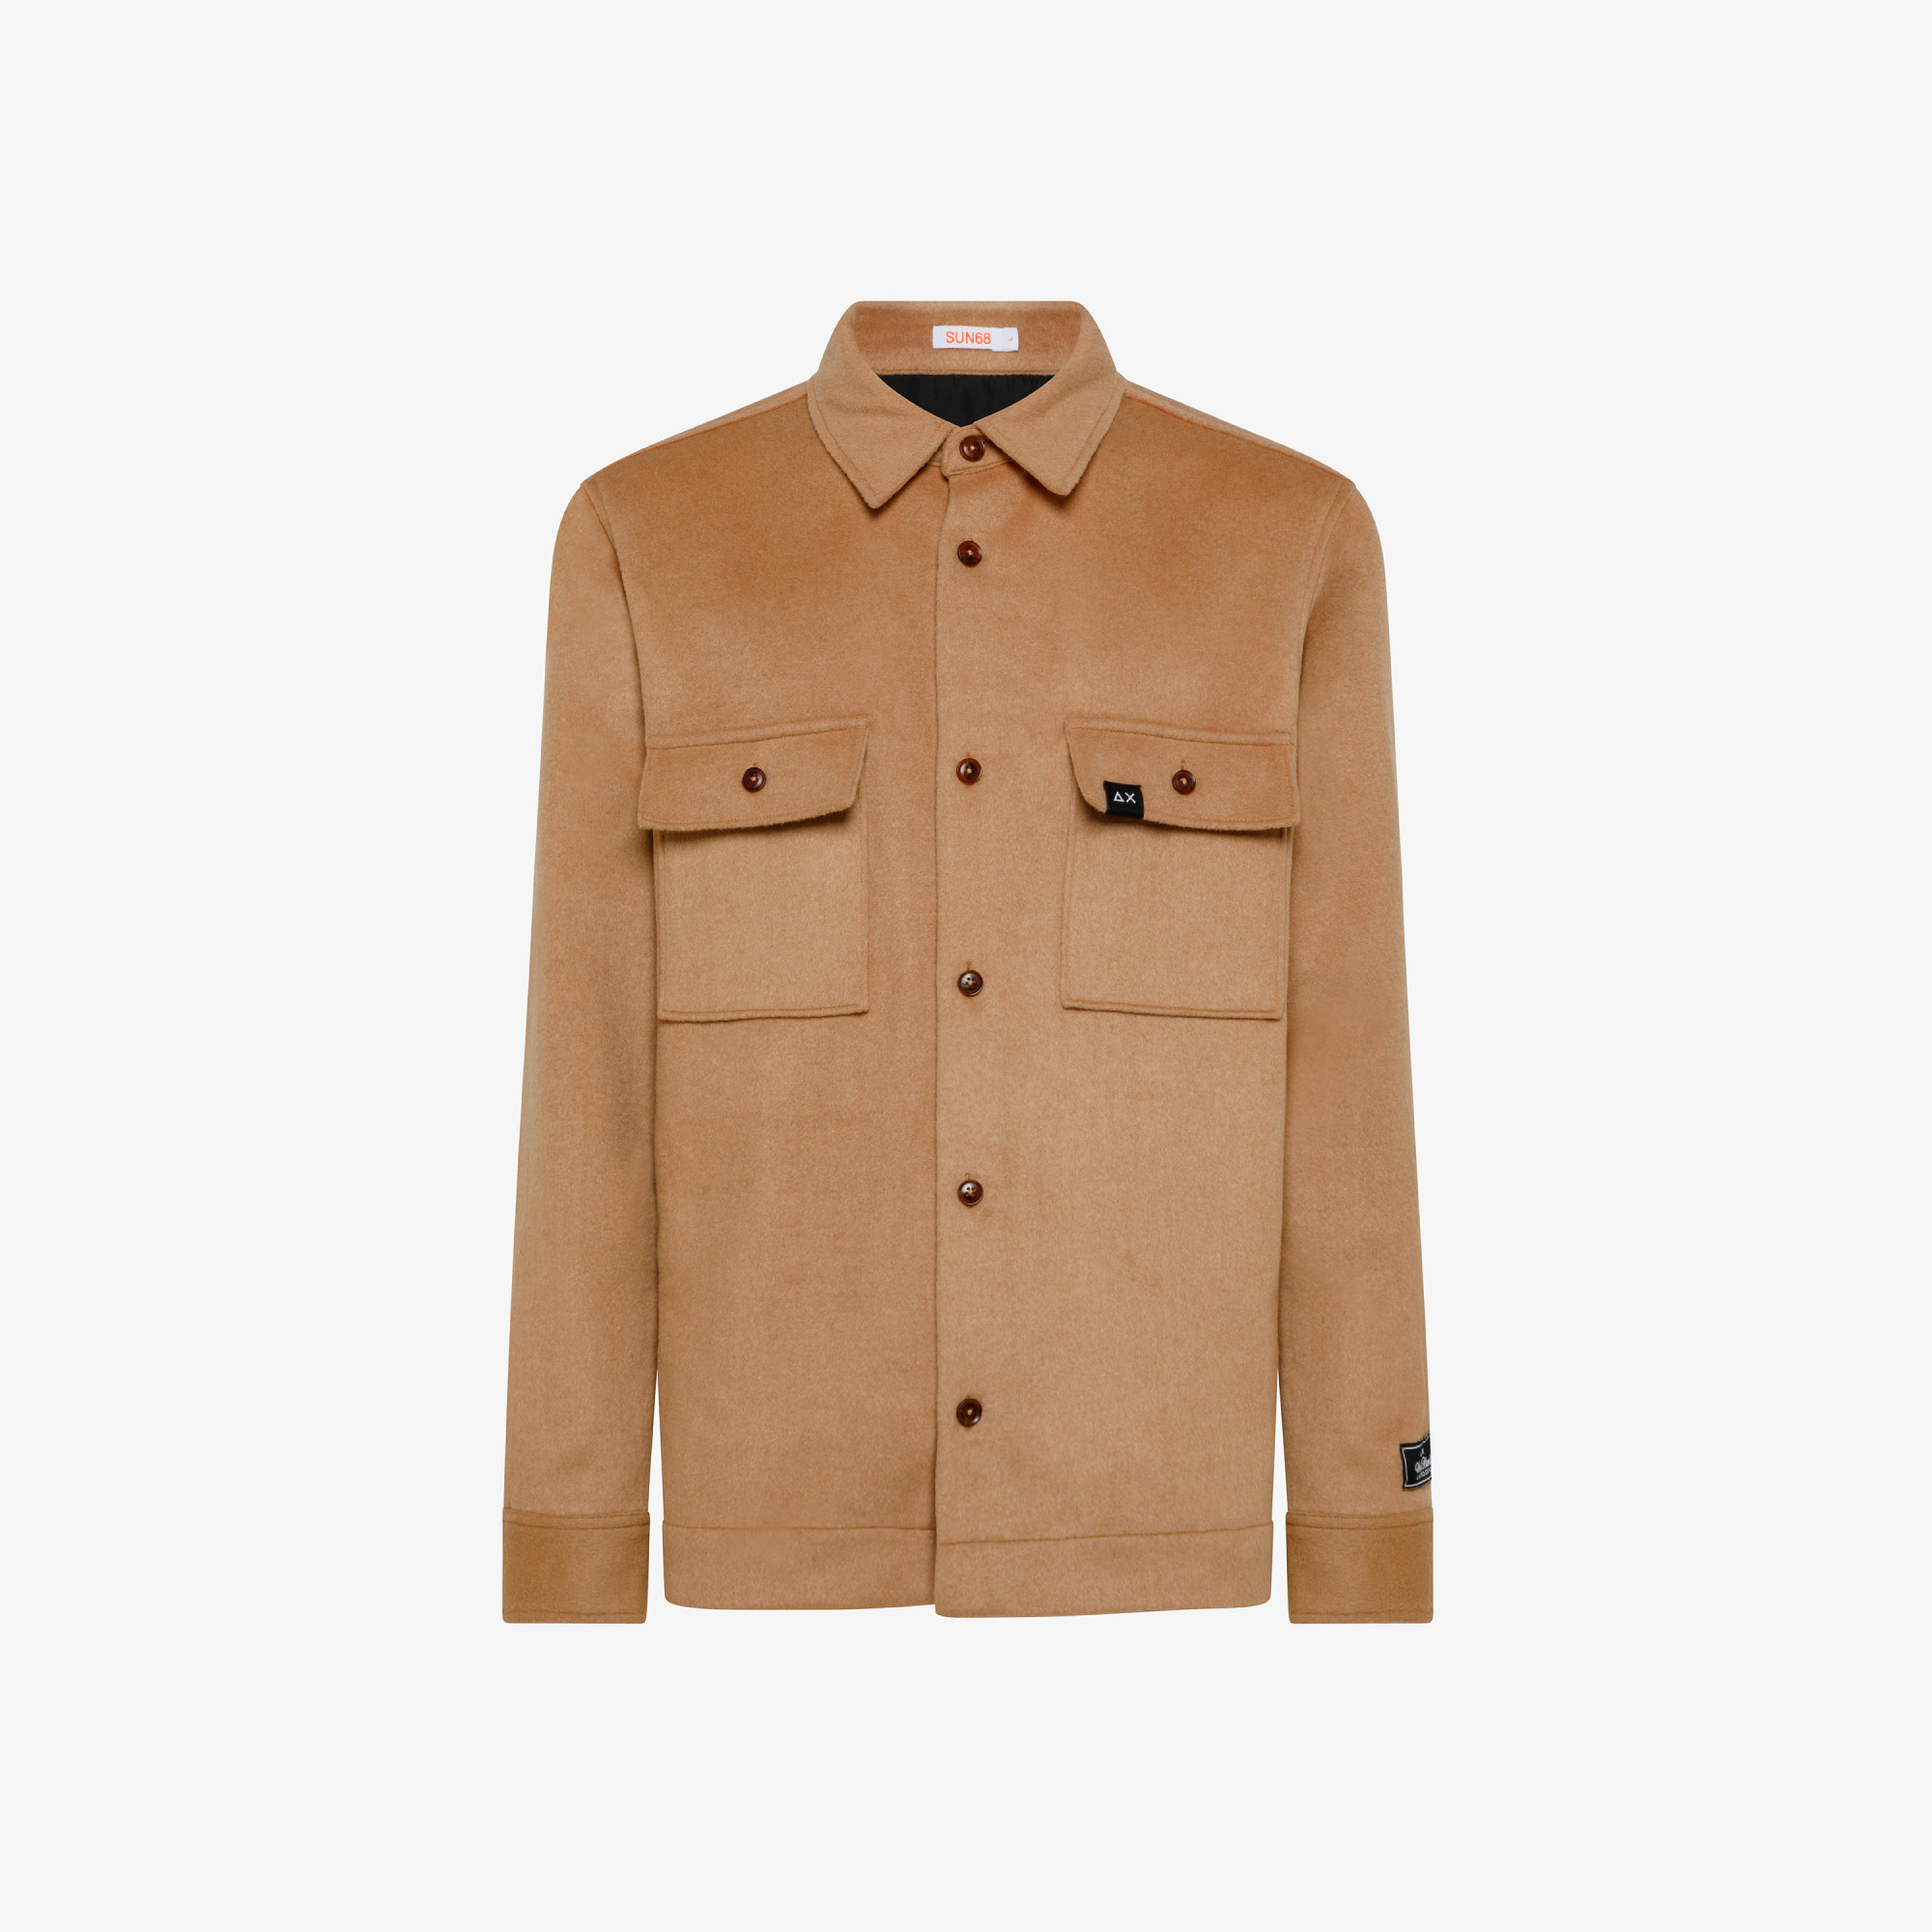 OVERSHIRT WITH POCKET ON CHEST L/S CAMEL